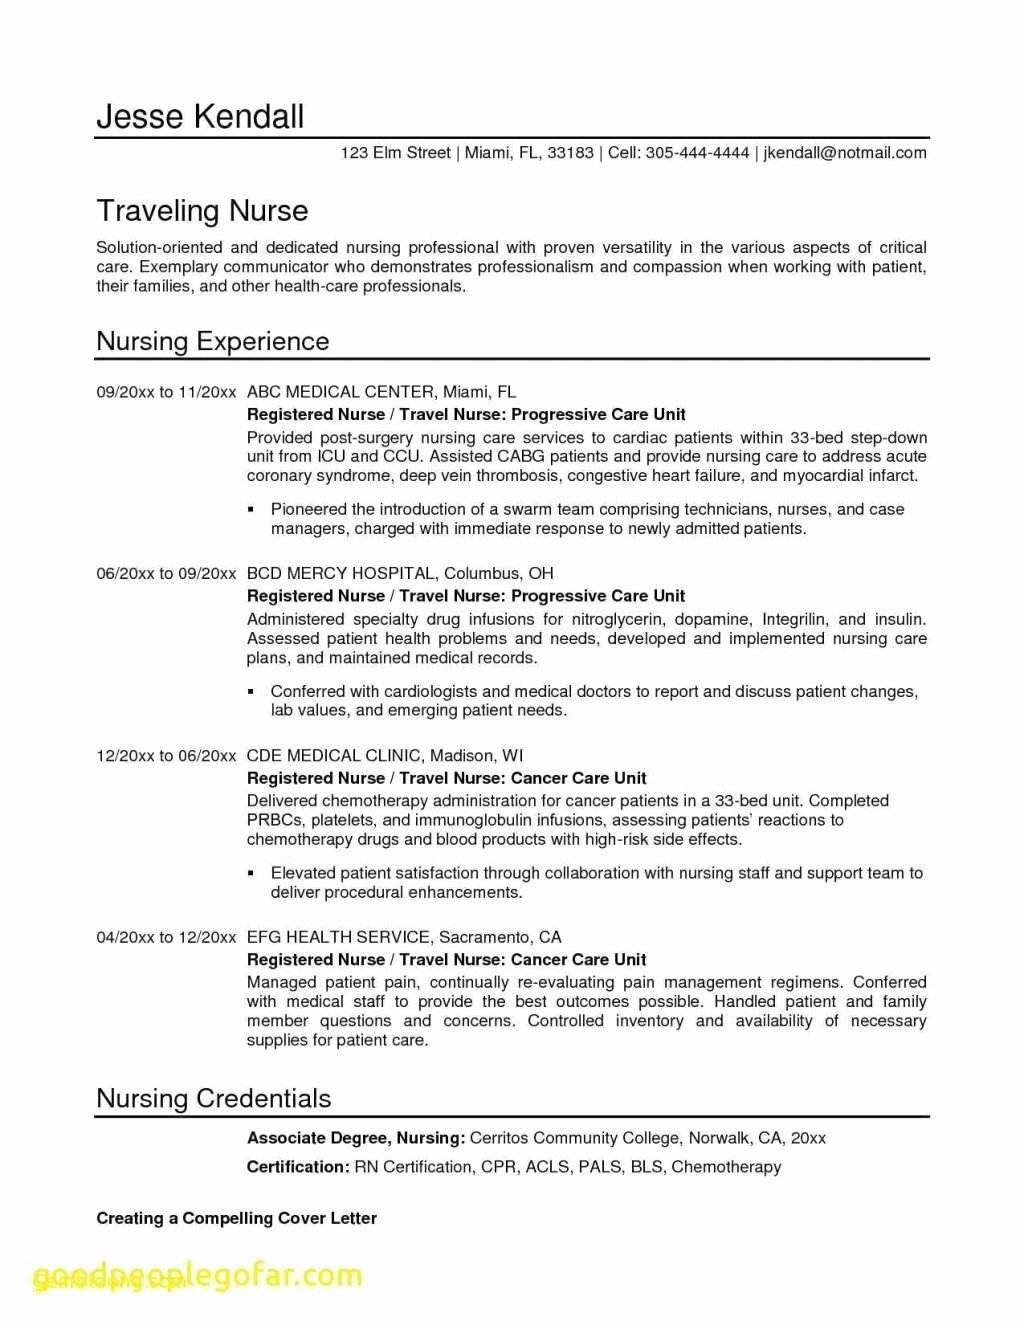 Graduate Nurse Resume Template Free Elegant Entry Level Rn Resume Template Free Tag 55 New Grad Rn